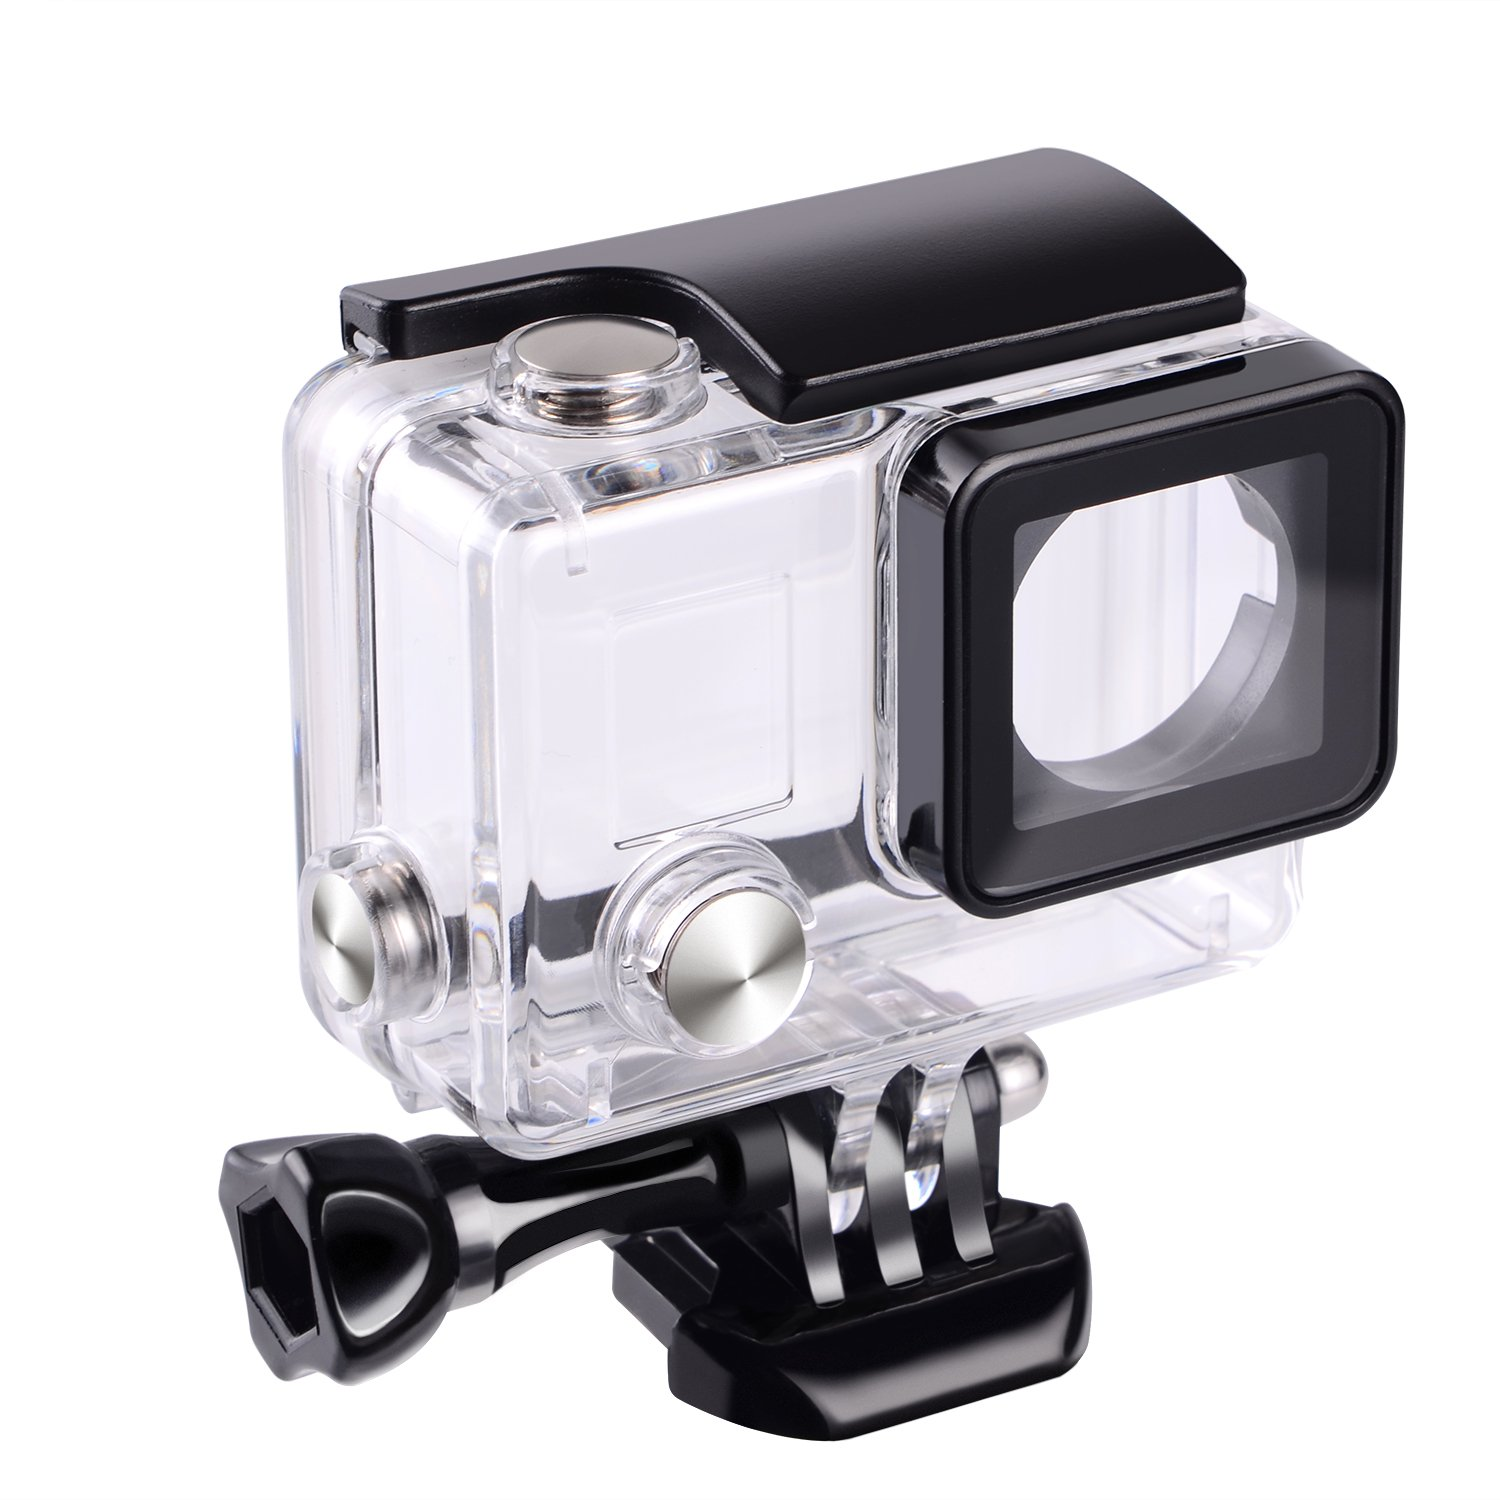 Suptig Replacement Waterproof Case Protective Housing for GoPro Hero 4, Hero 3+, Hero3 Outside Sport Camera for Underwater Use - Water Resistant up to 147ft (45m) by Suptig